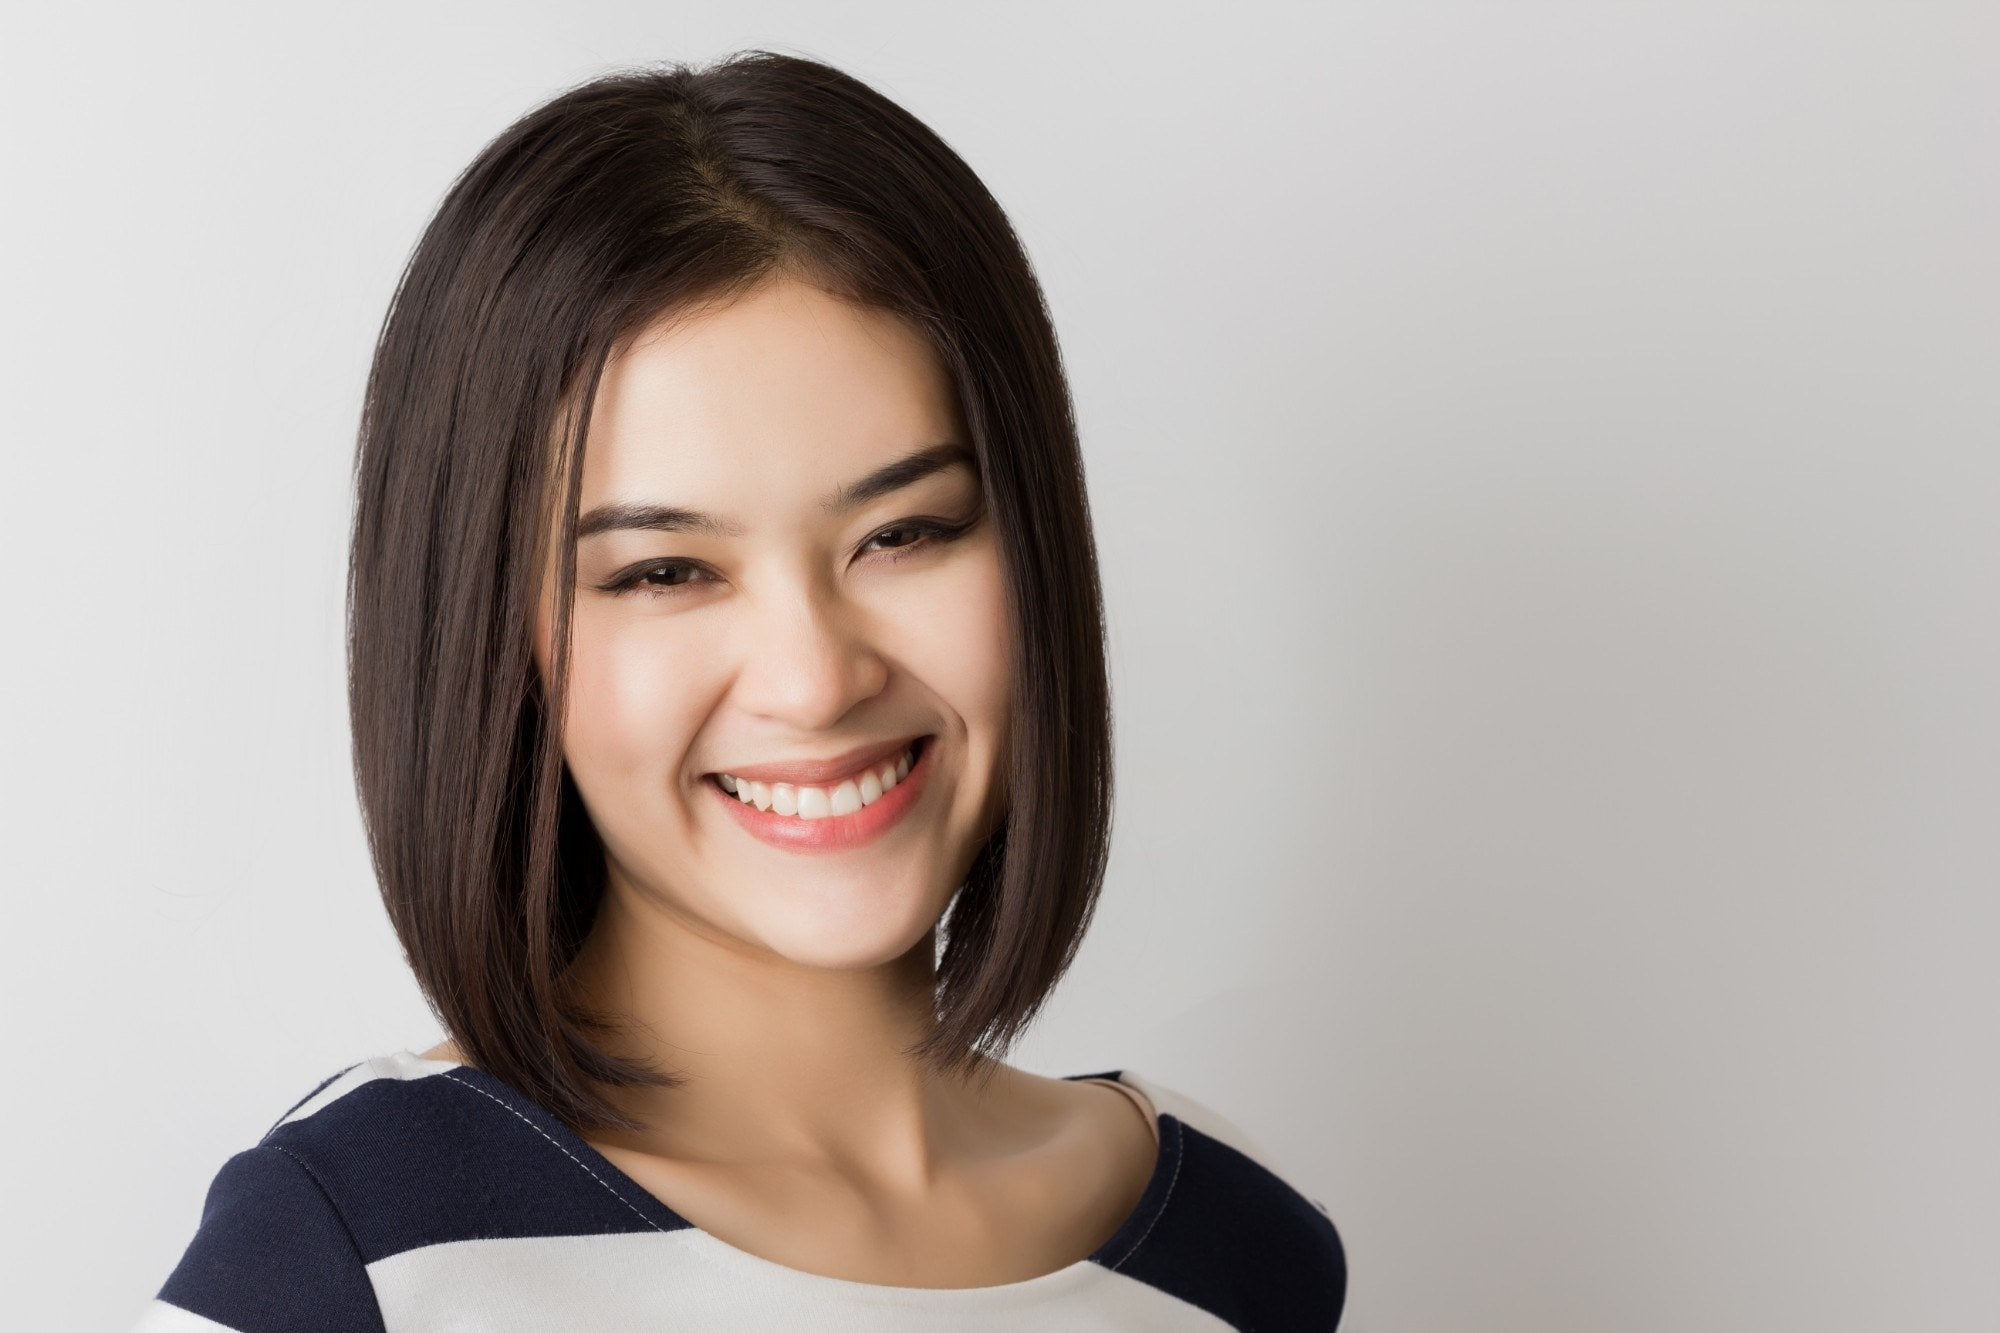 Short Hair For Round Face 15 Stylish Ideas For 2020